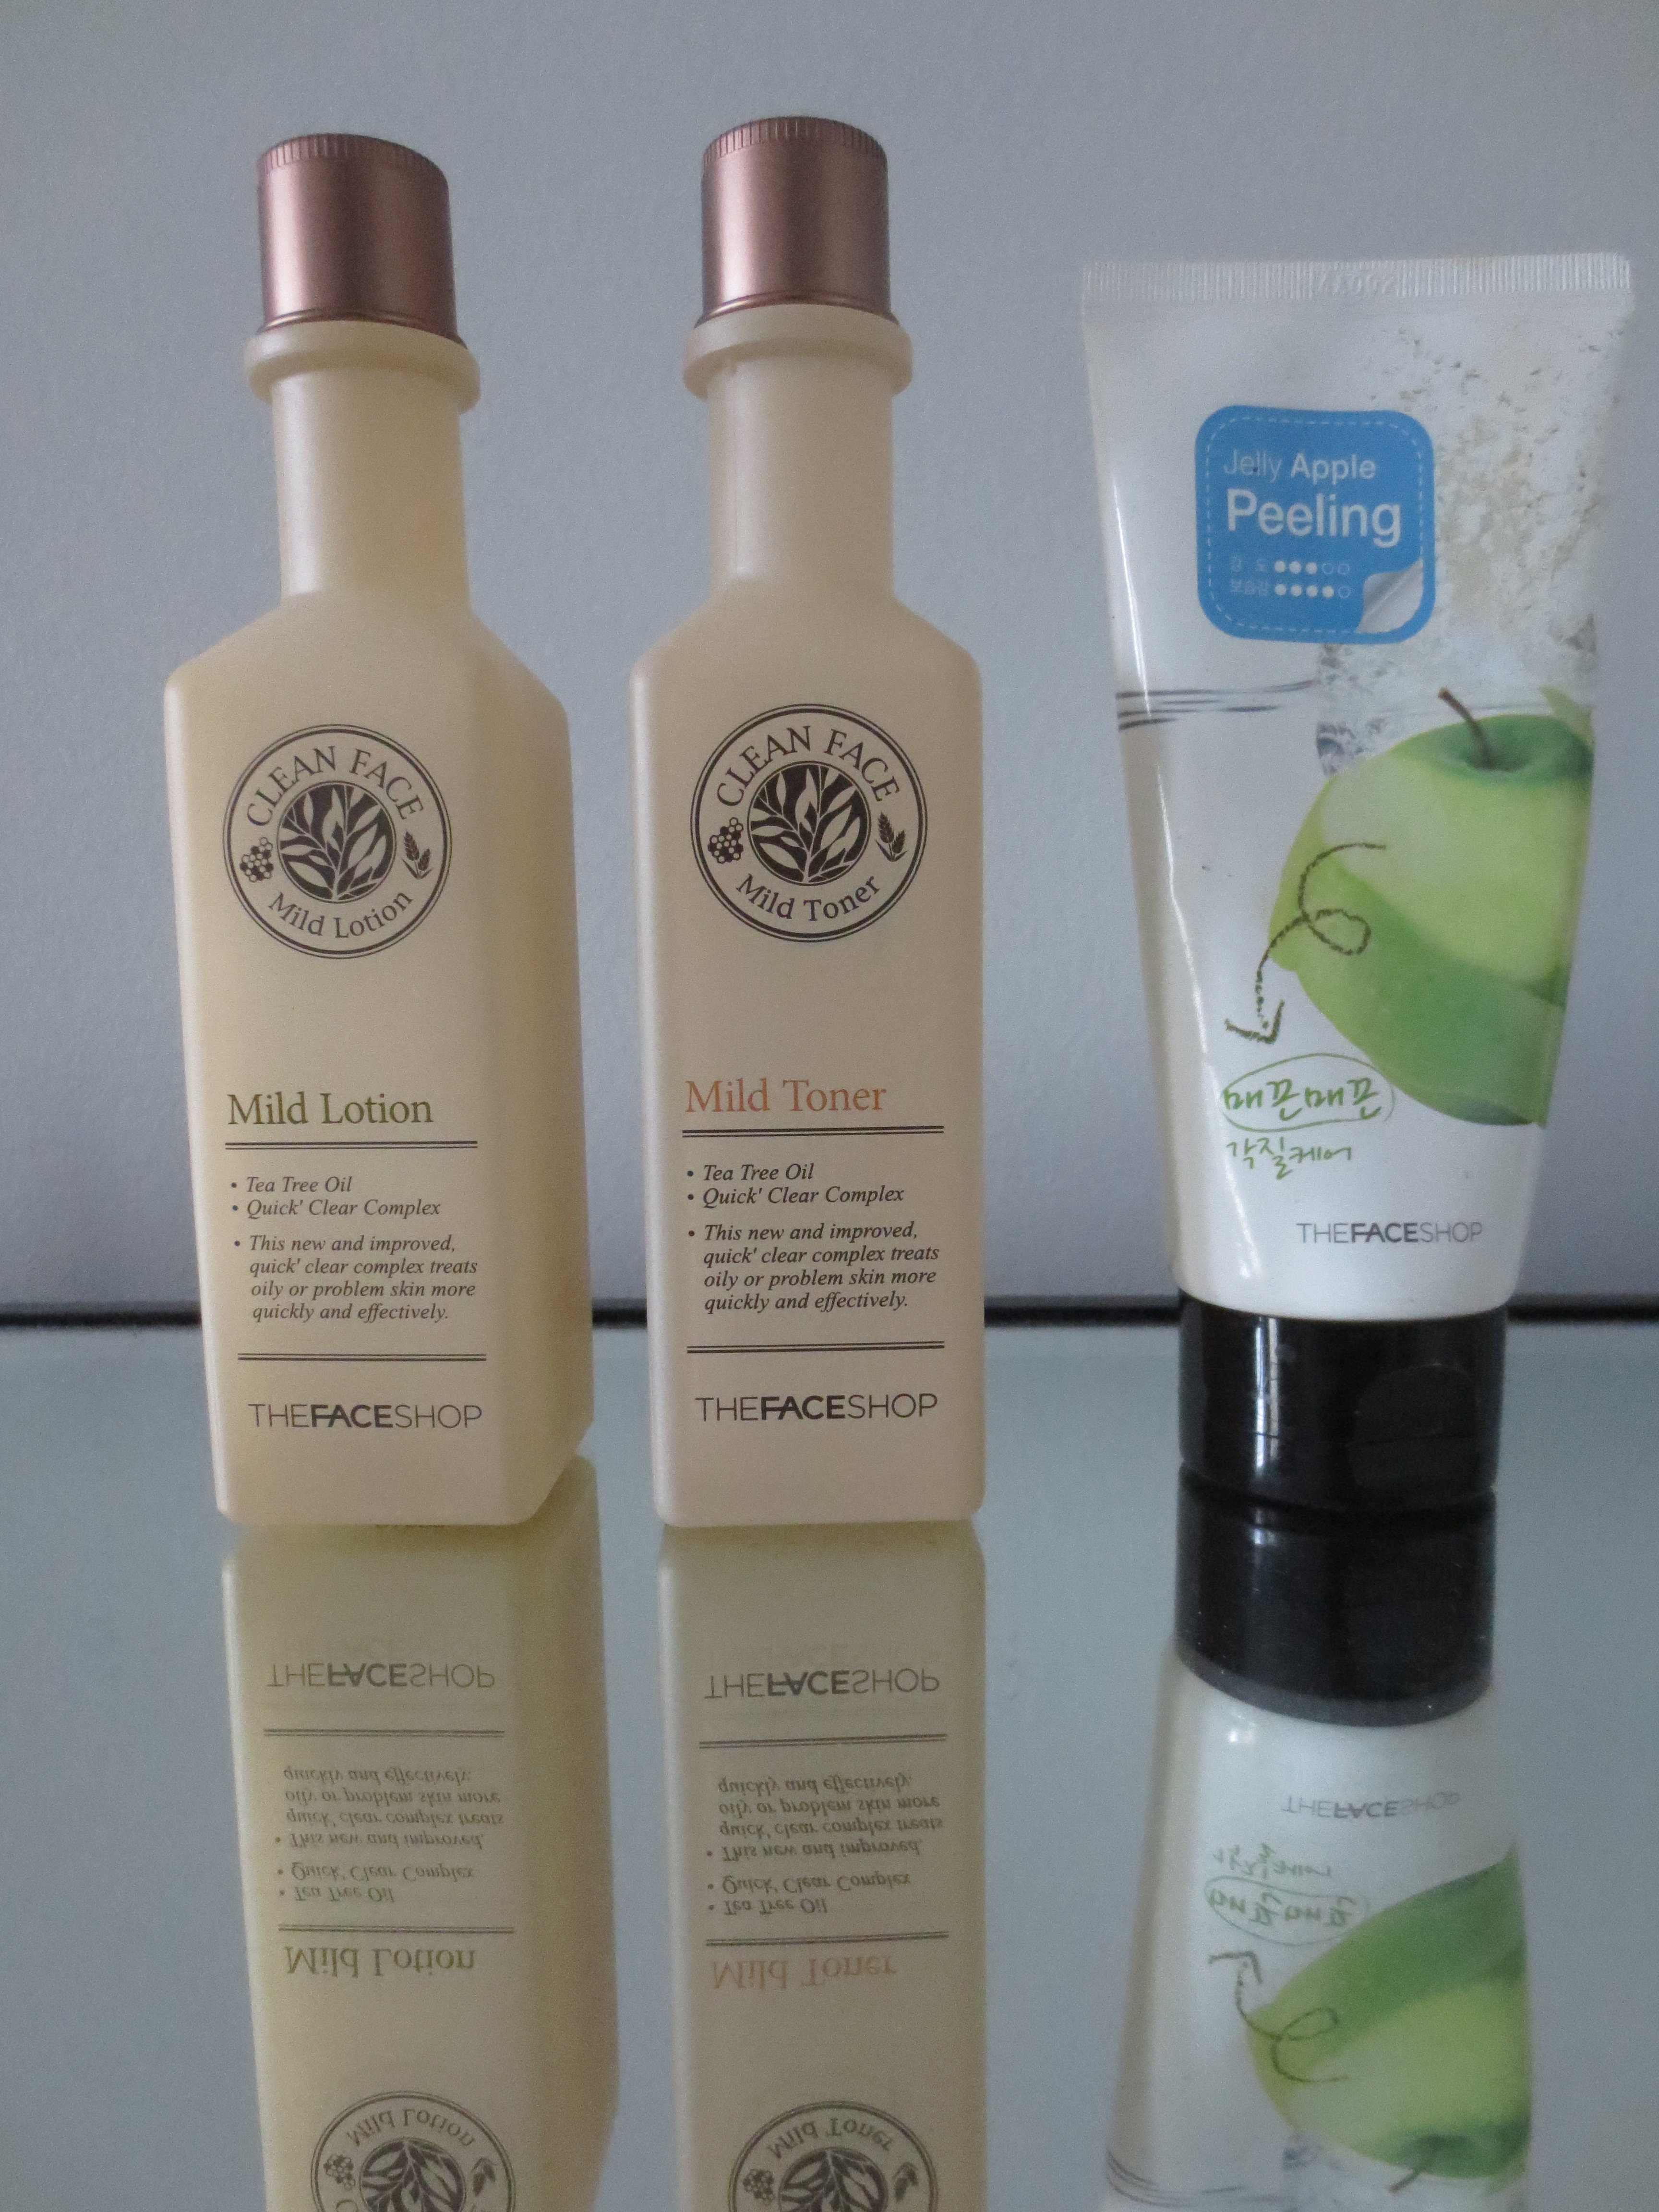 Review The Face Shop Products For Sensitive Skin   Aiishwarya